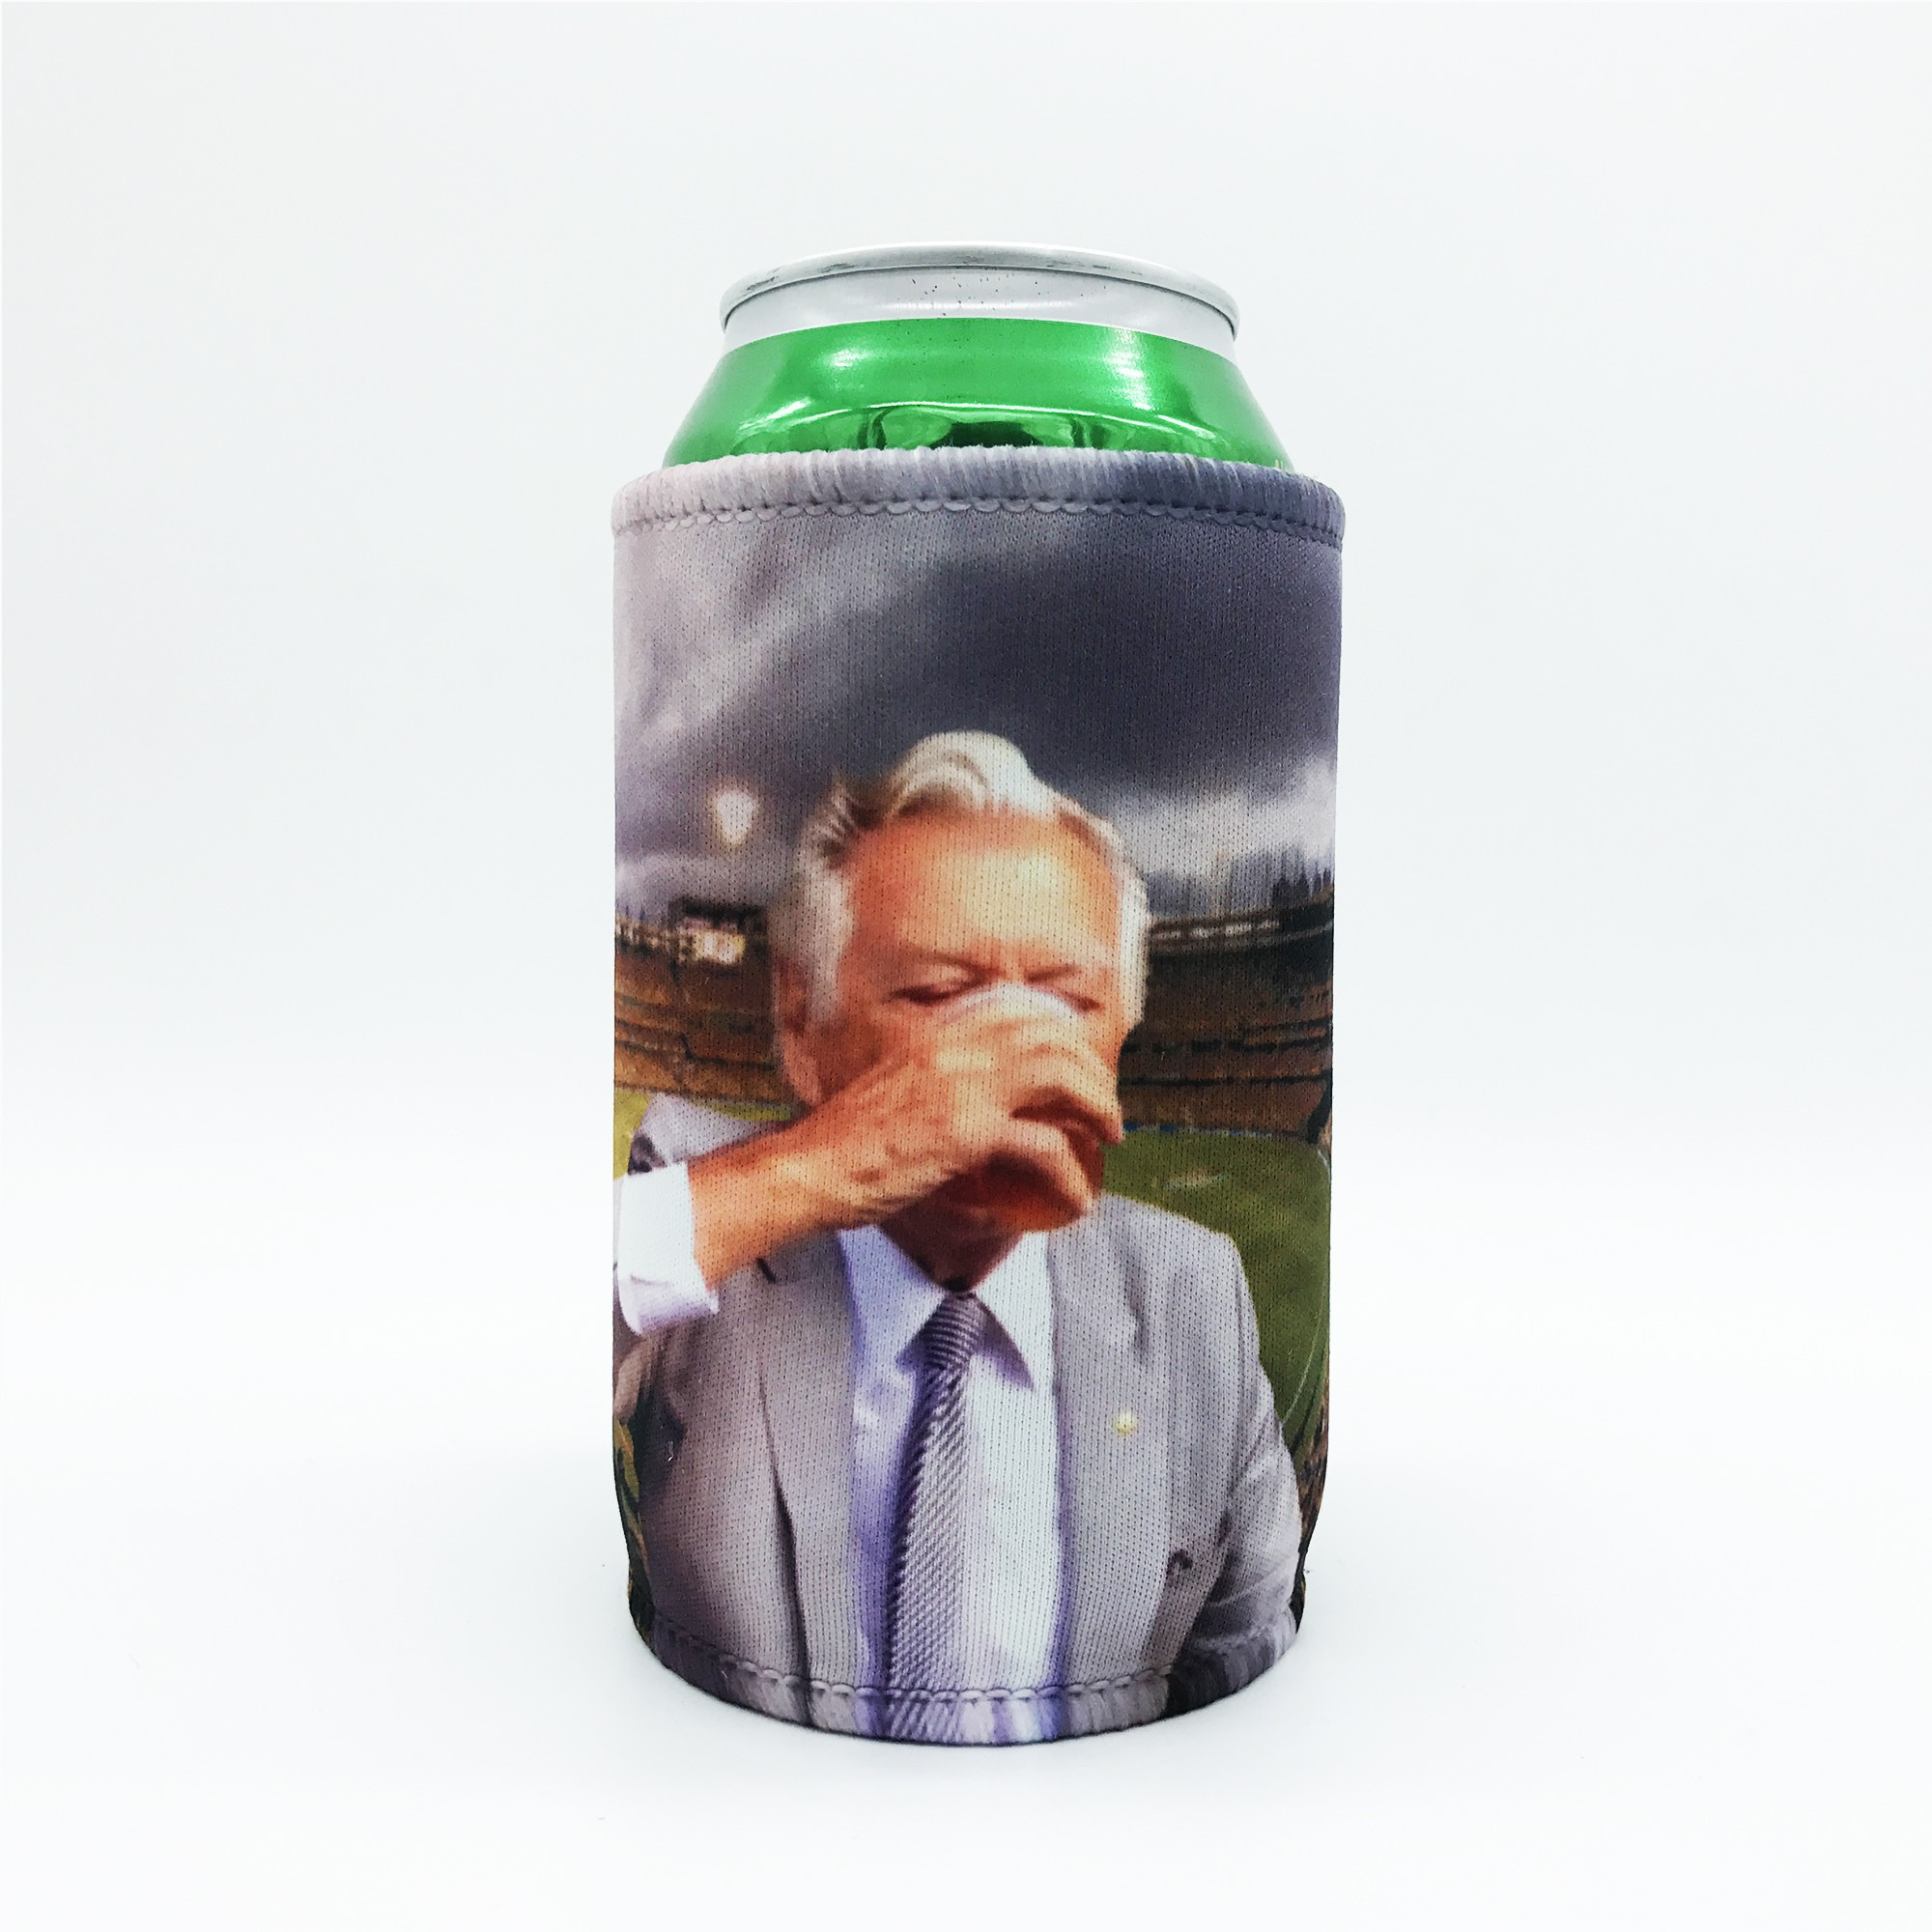 BOB FOR PM STUBBY HOLDER